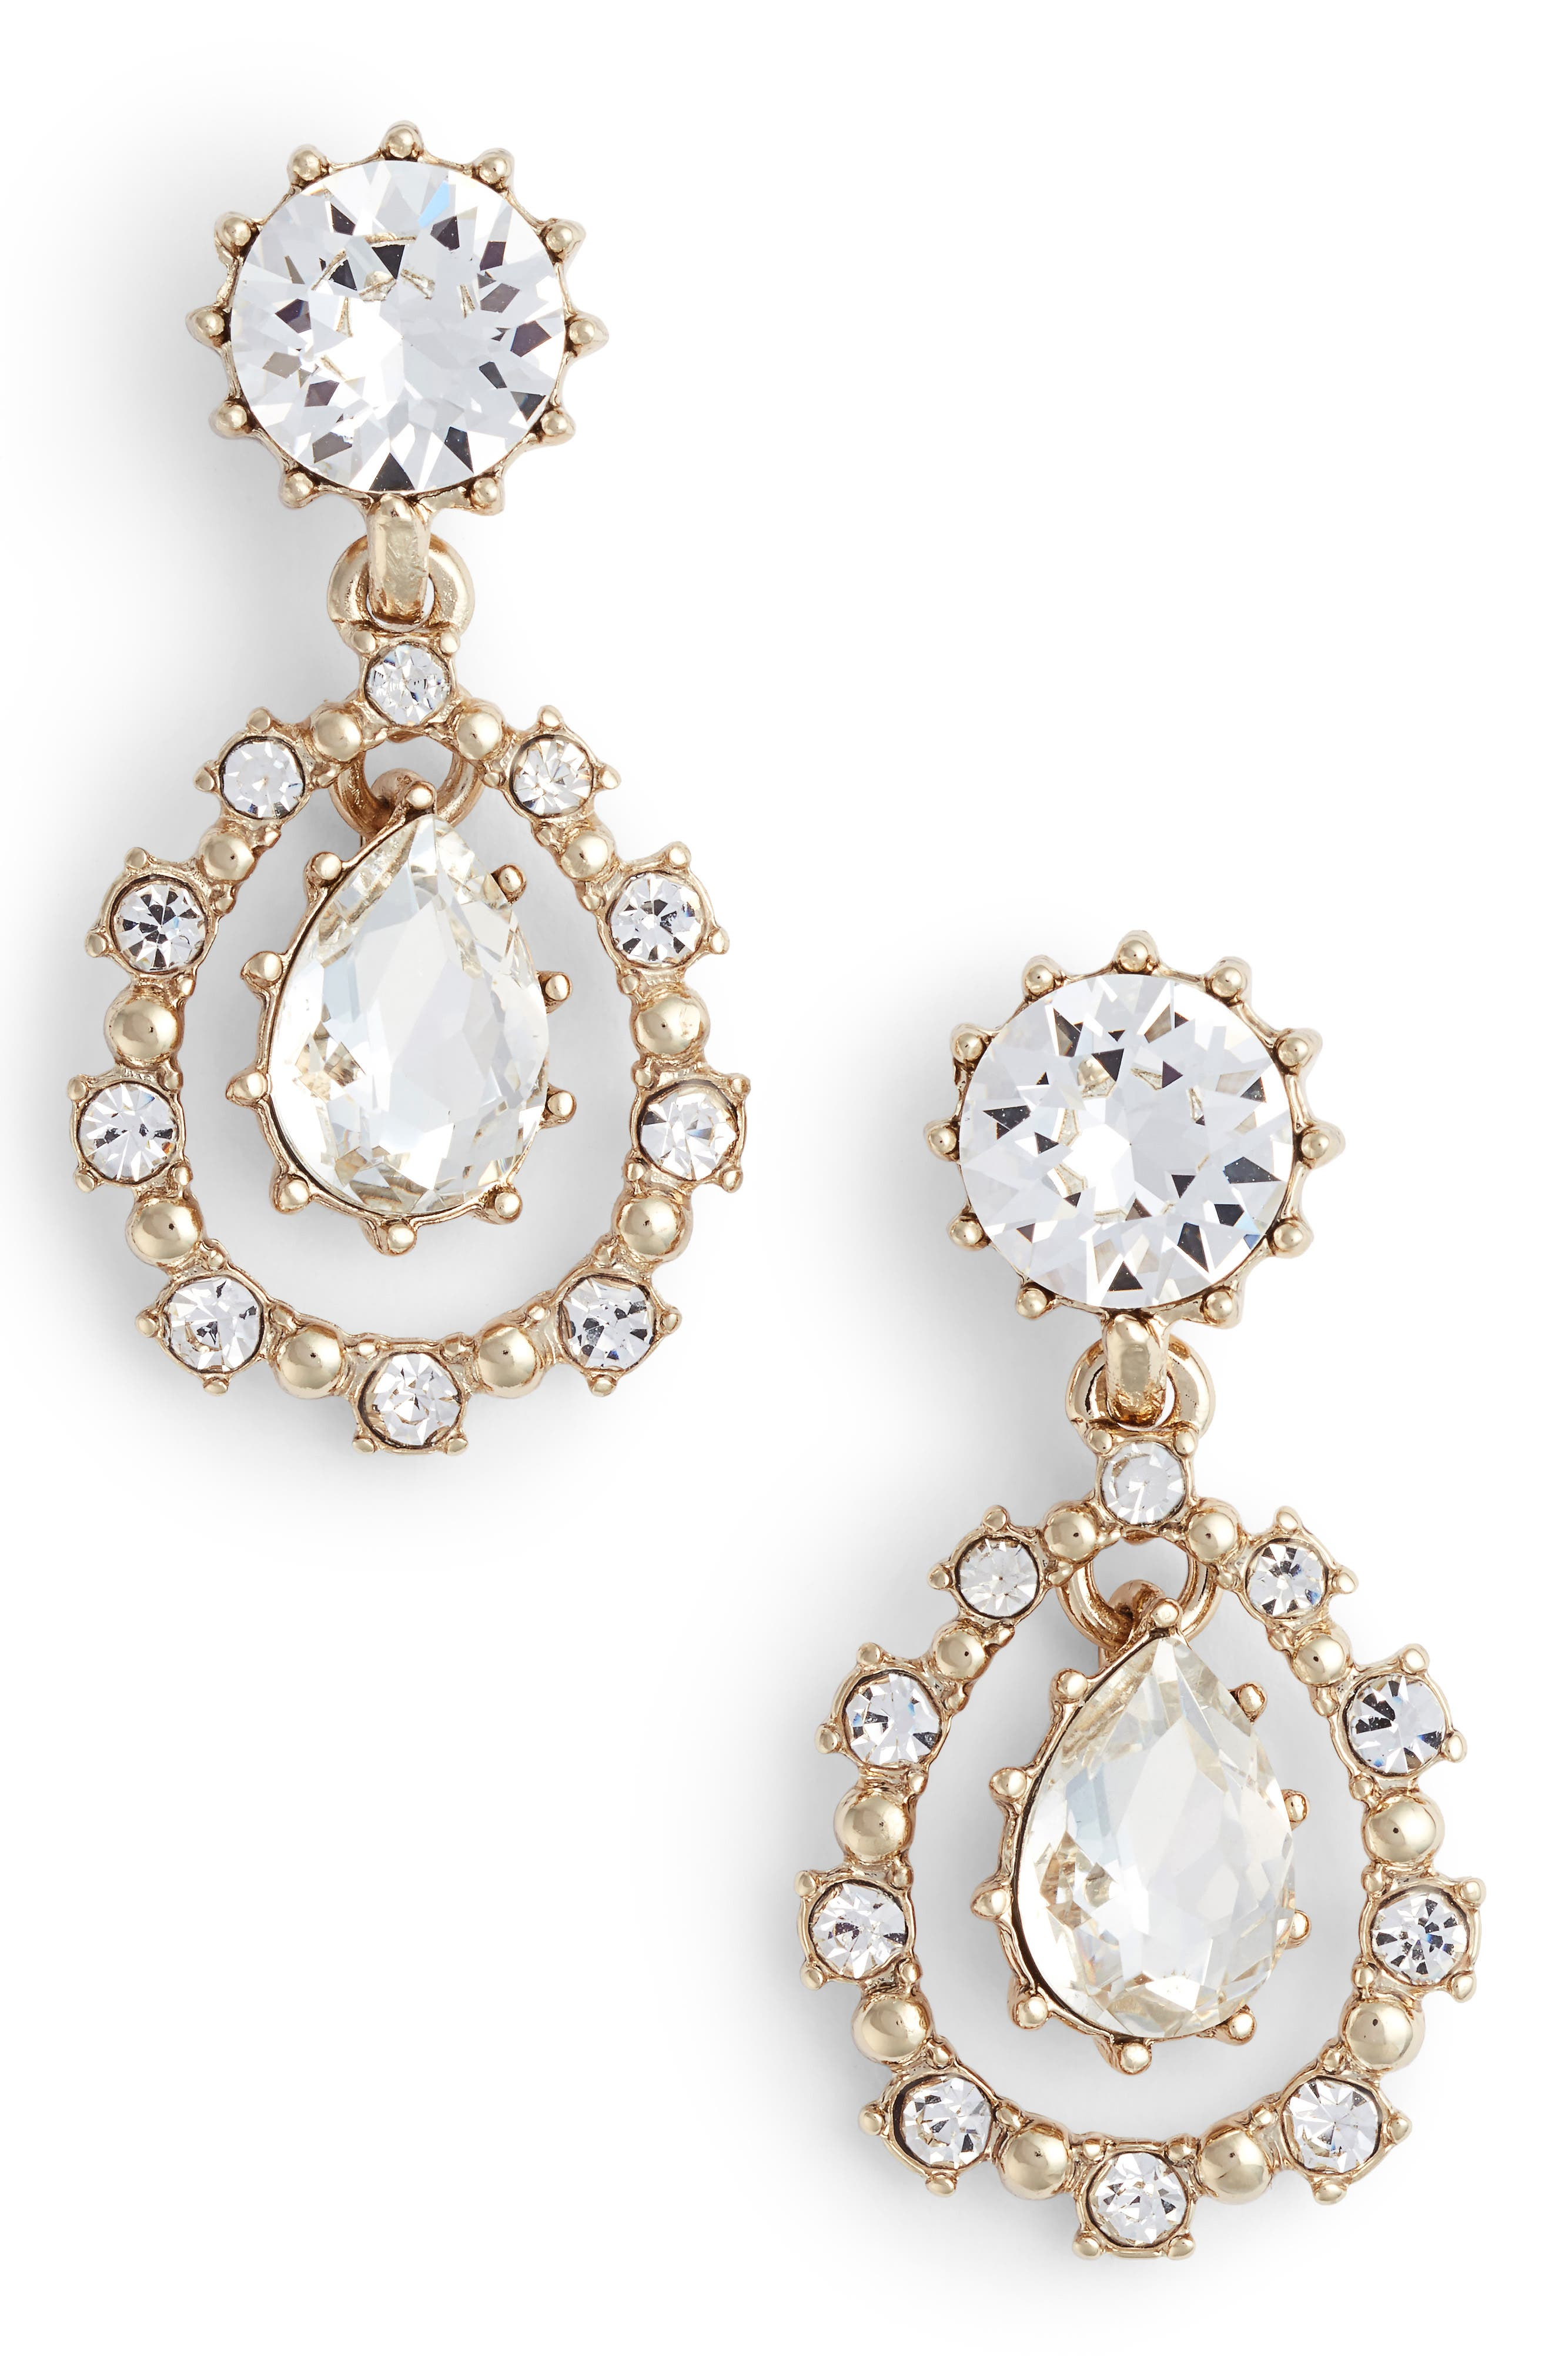 Double Drop Crystal Earrings,                         Main,                         color, Gold/ Crystal